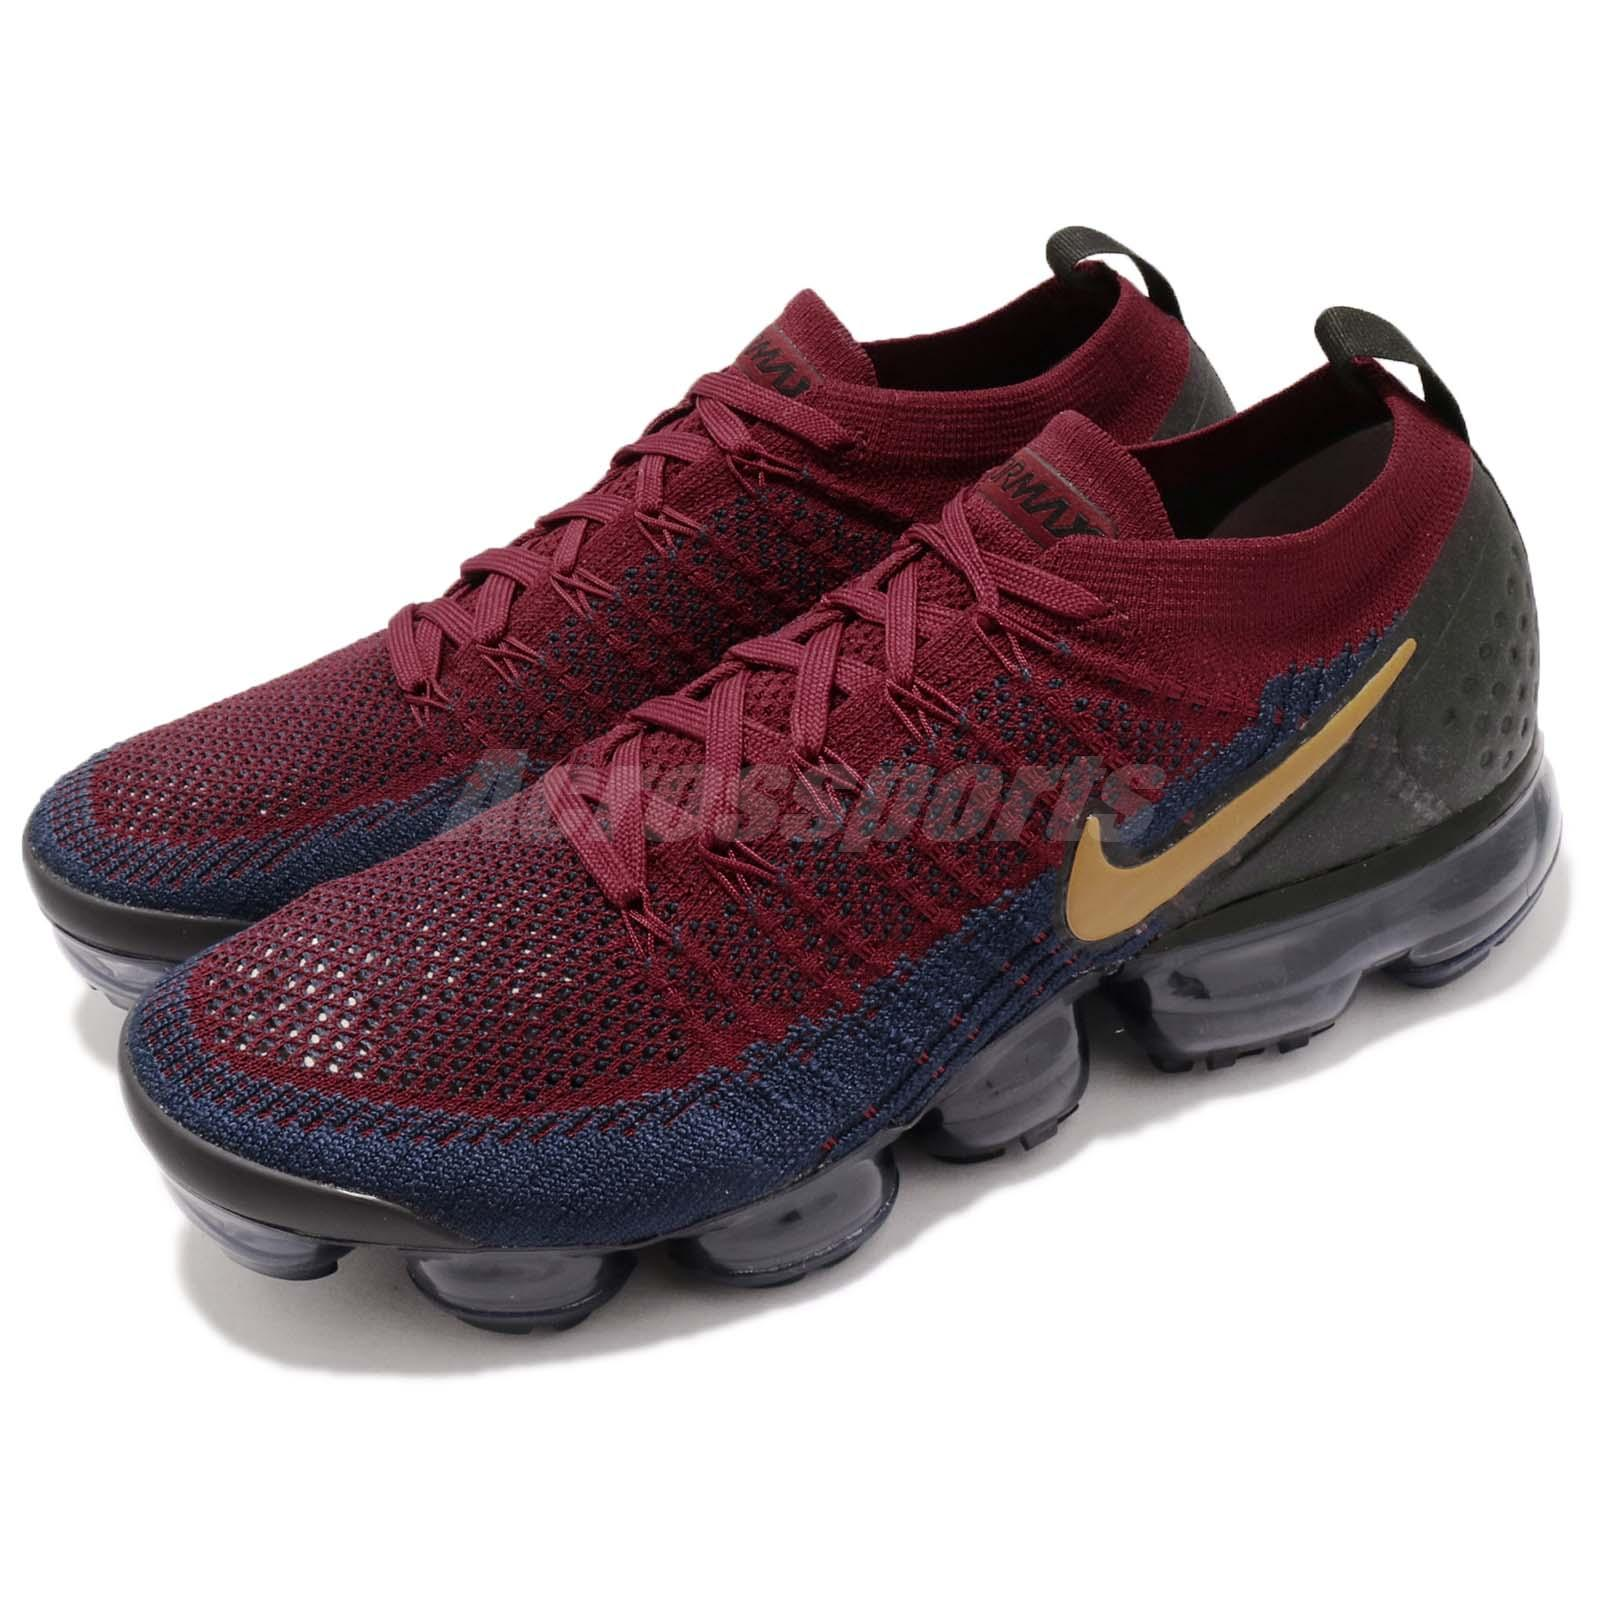 4297bfdad18b Details about Nike Air Vapormax Flyknit 2 II Olympic Red Wheat Navy Black  Men Shoes 942842-604